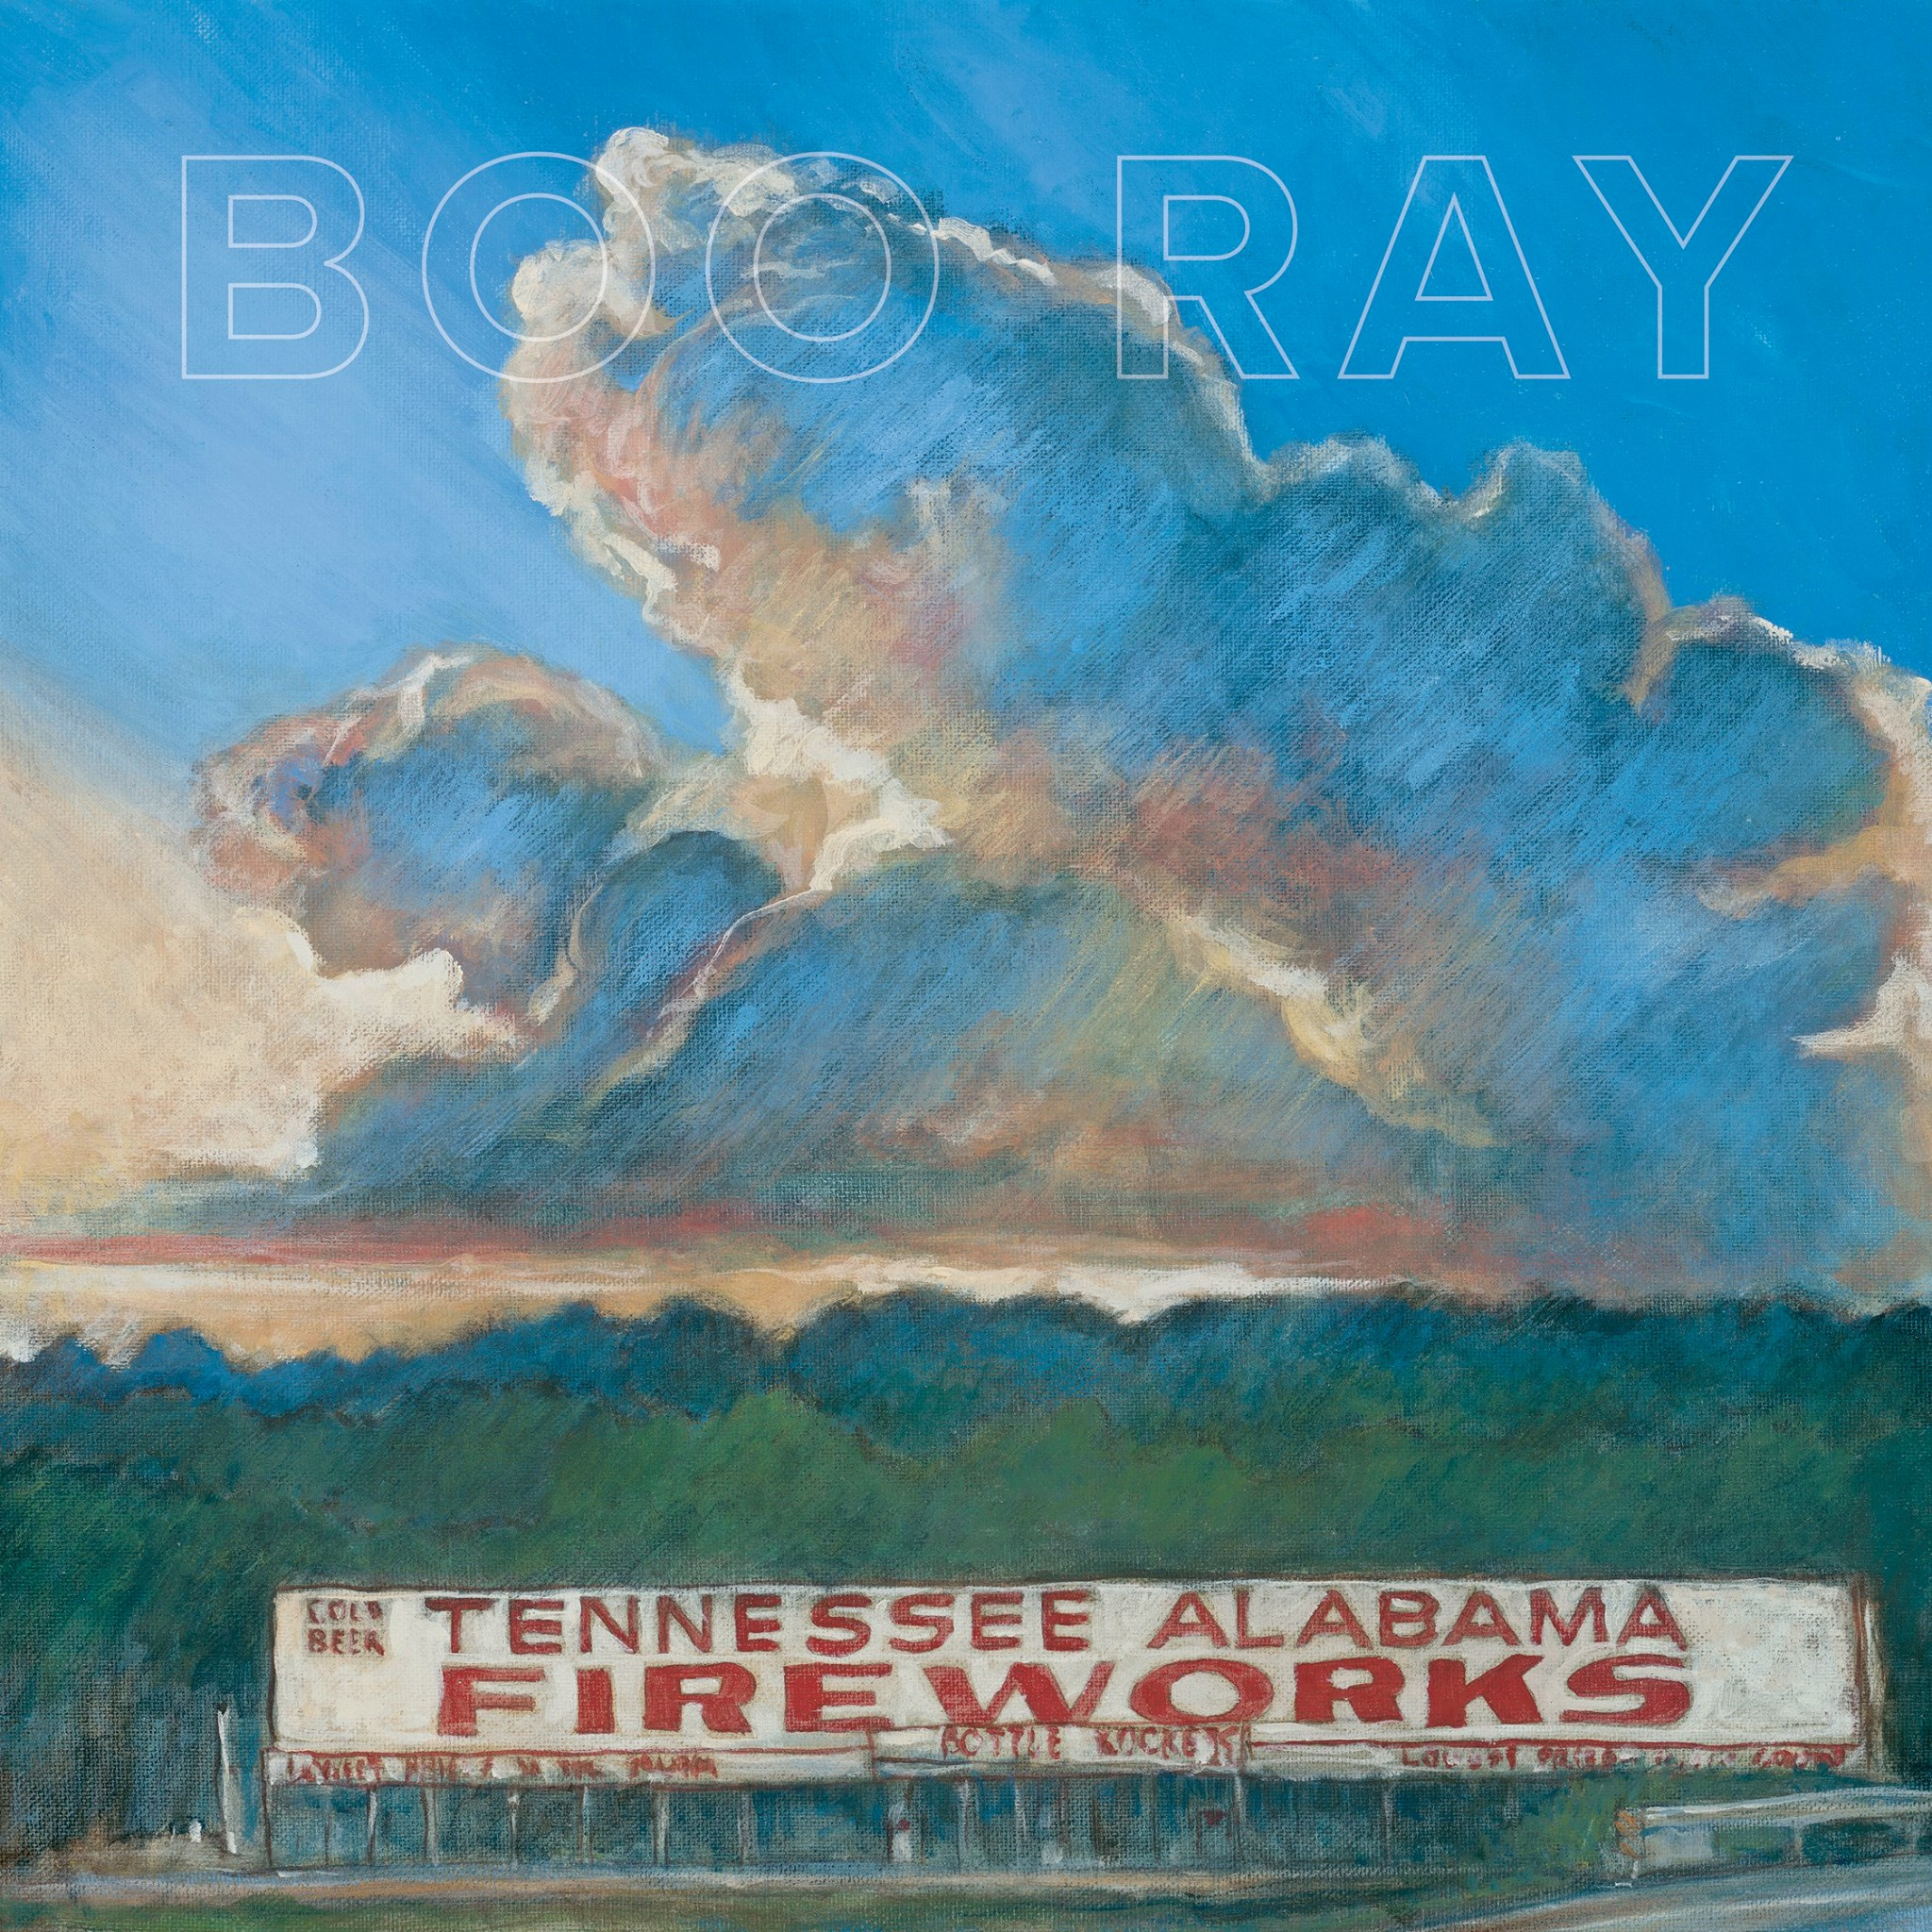 Boo Ray to release 'Tennessee Alabama Fireworks' in February